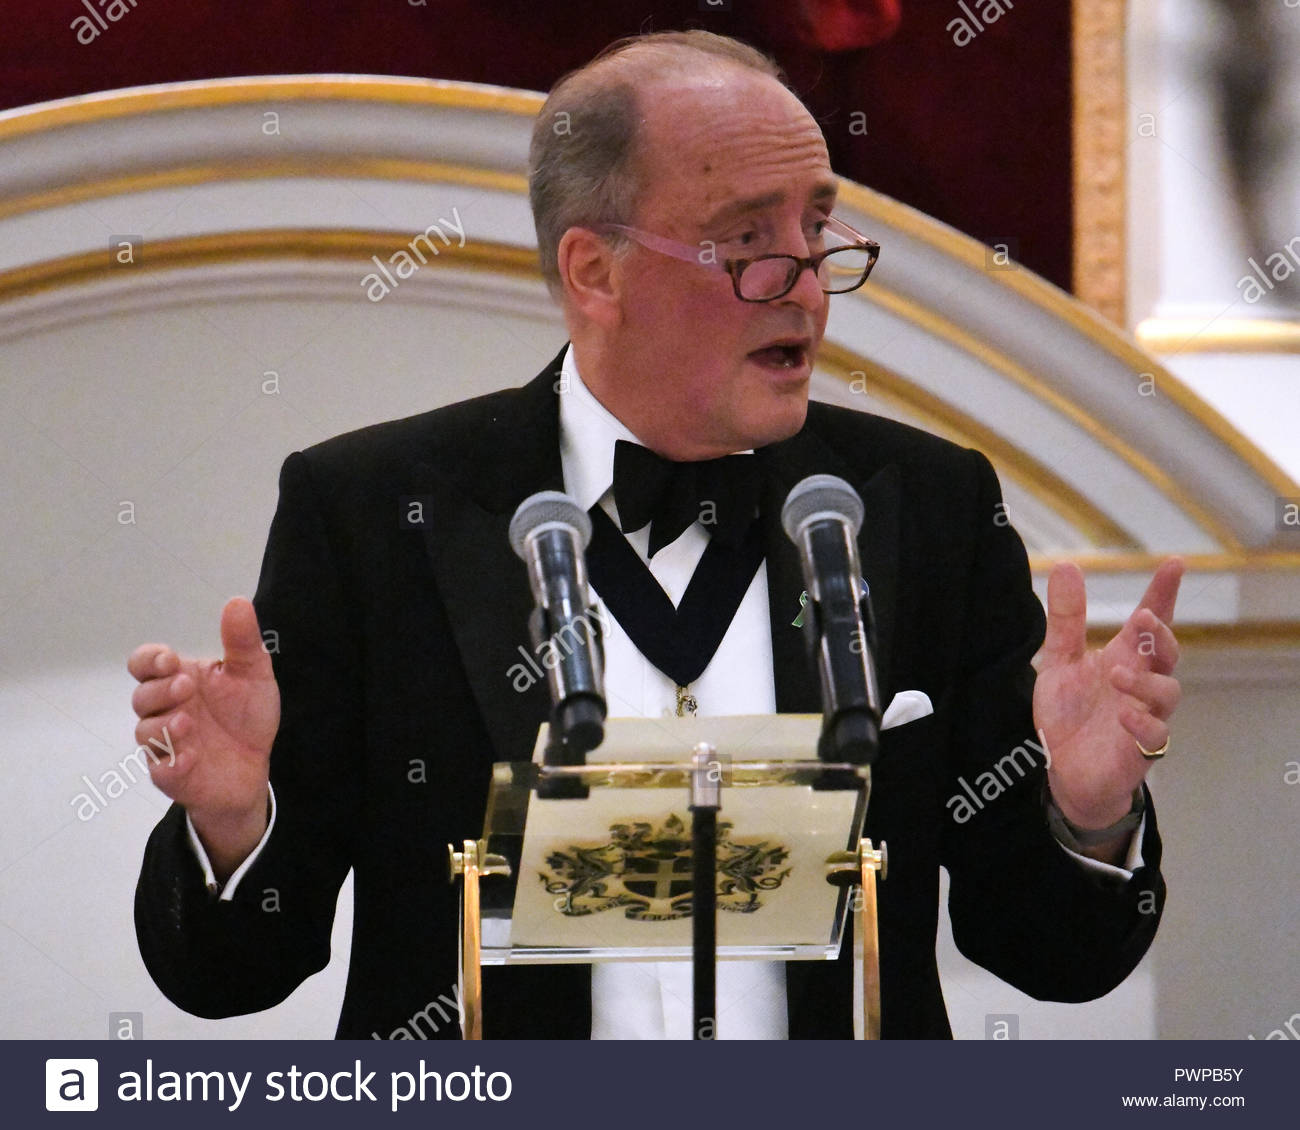 London, UK. 17 October, 2018. Charles Bowman, Lord Mayor of the City of London gives speech at the International Trade Banquet, The Mansion House, Walbrook, London. Credit: Bart Lenoir/Alamy Live News - Stock Image